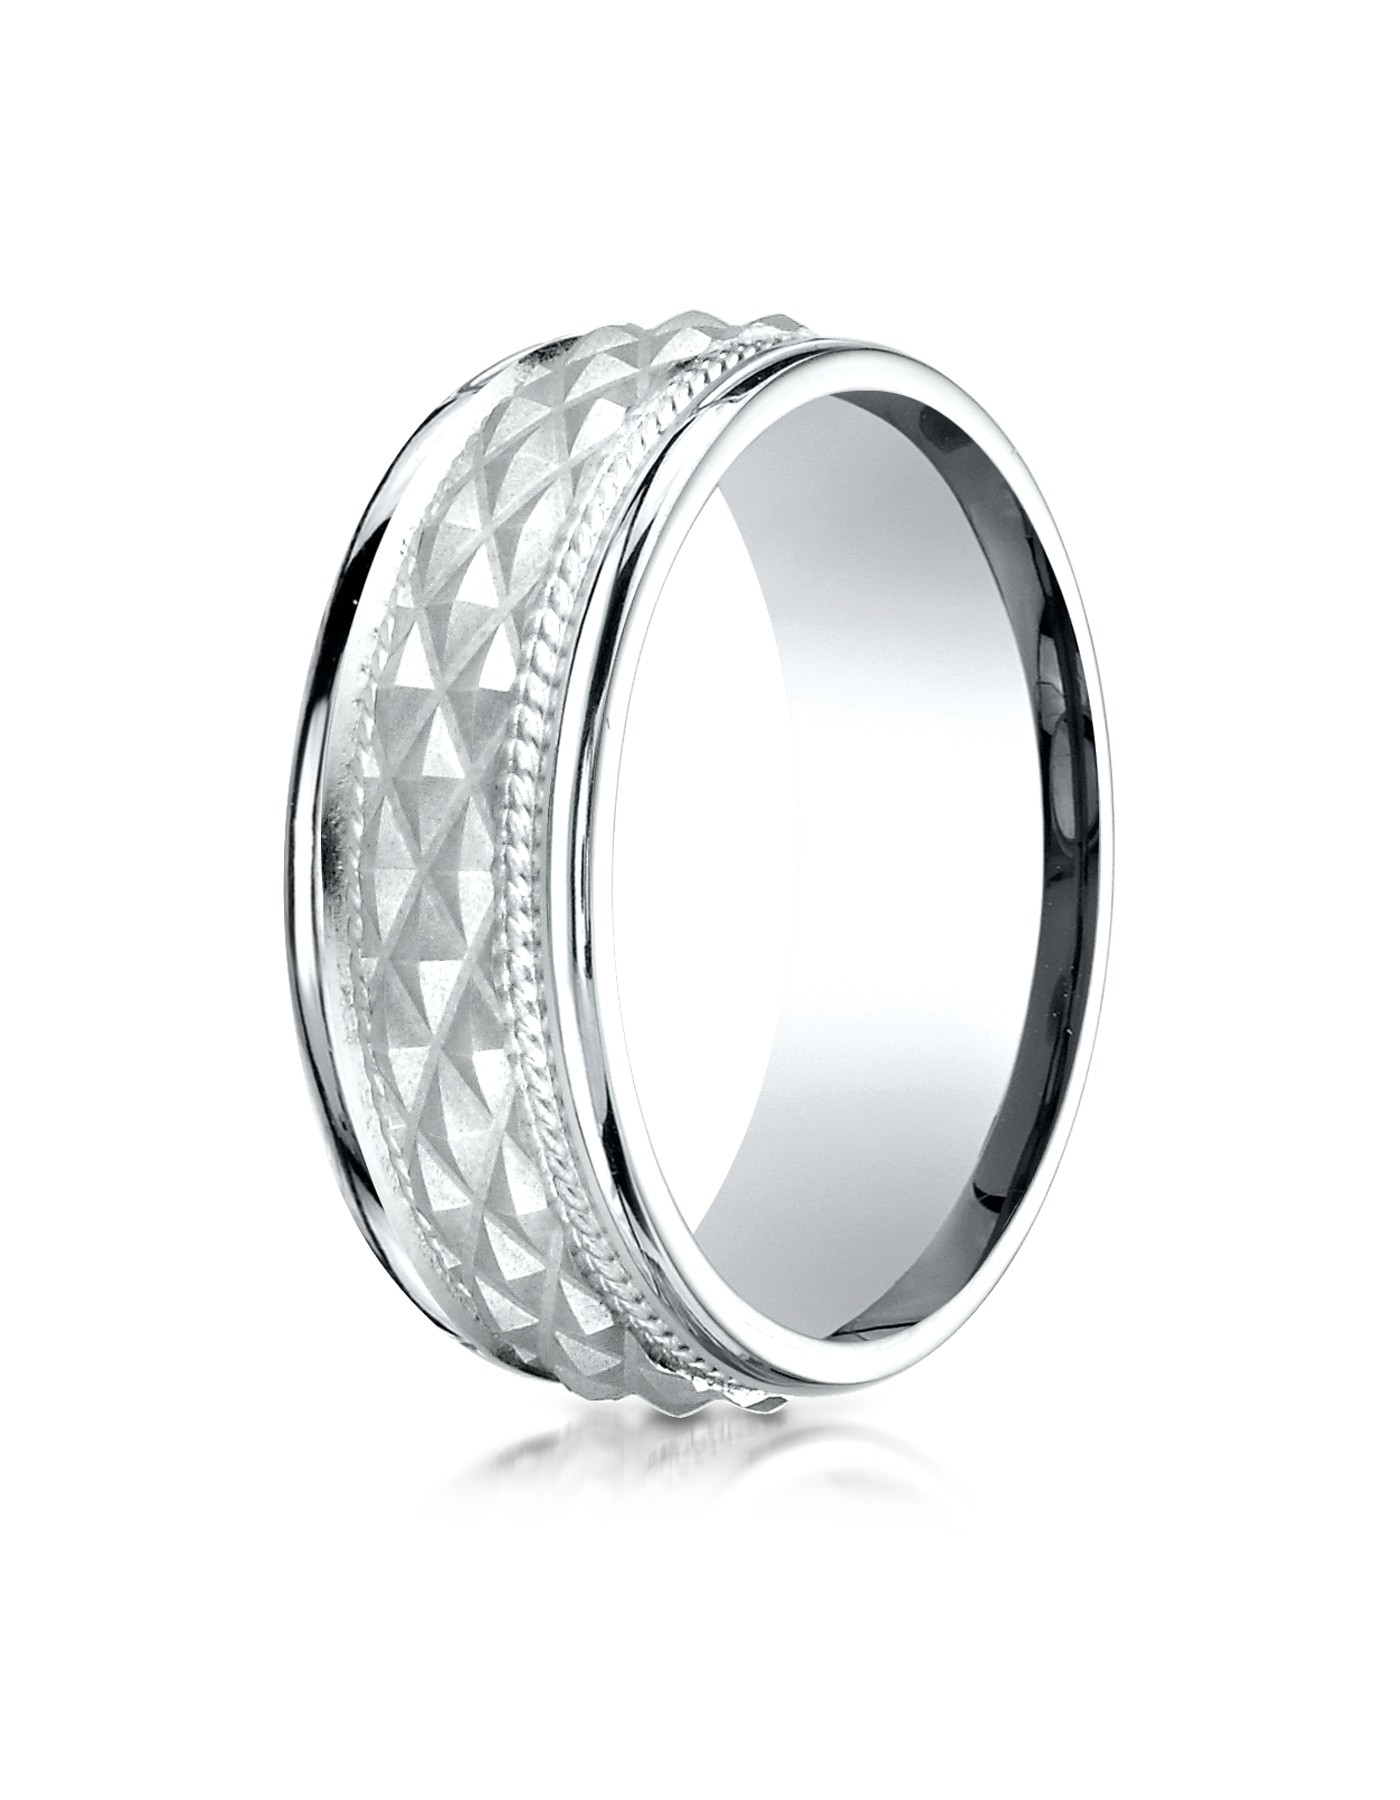 14k White Gold 8mm Comfort Fit Round Edge Cross Hatch Patterned Band